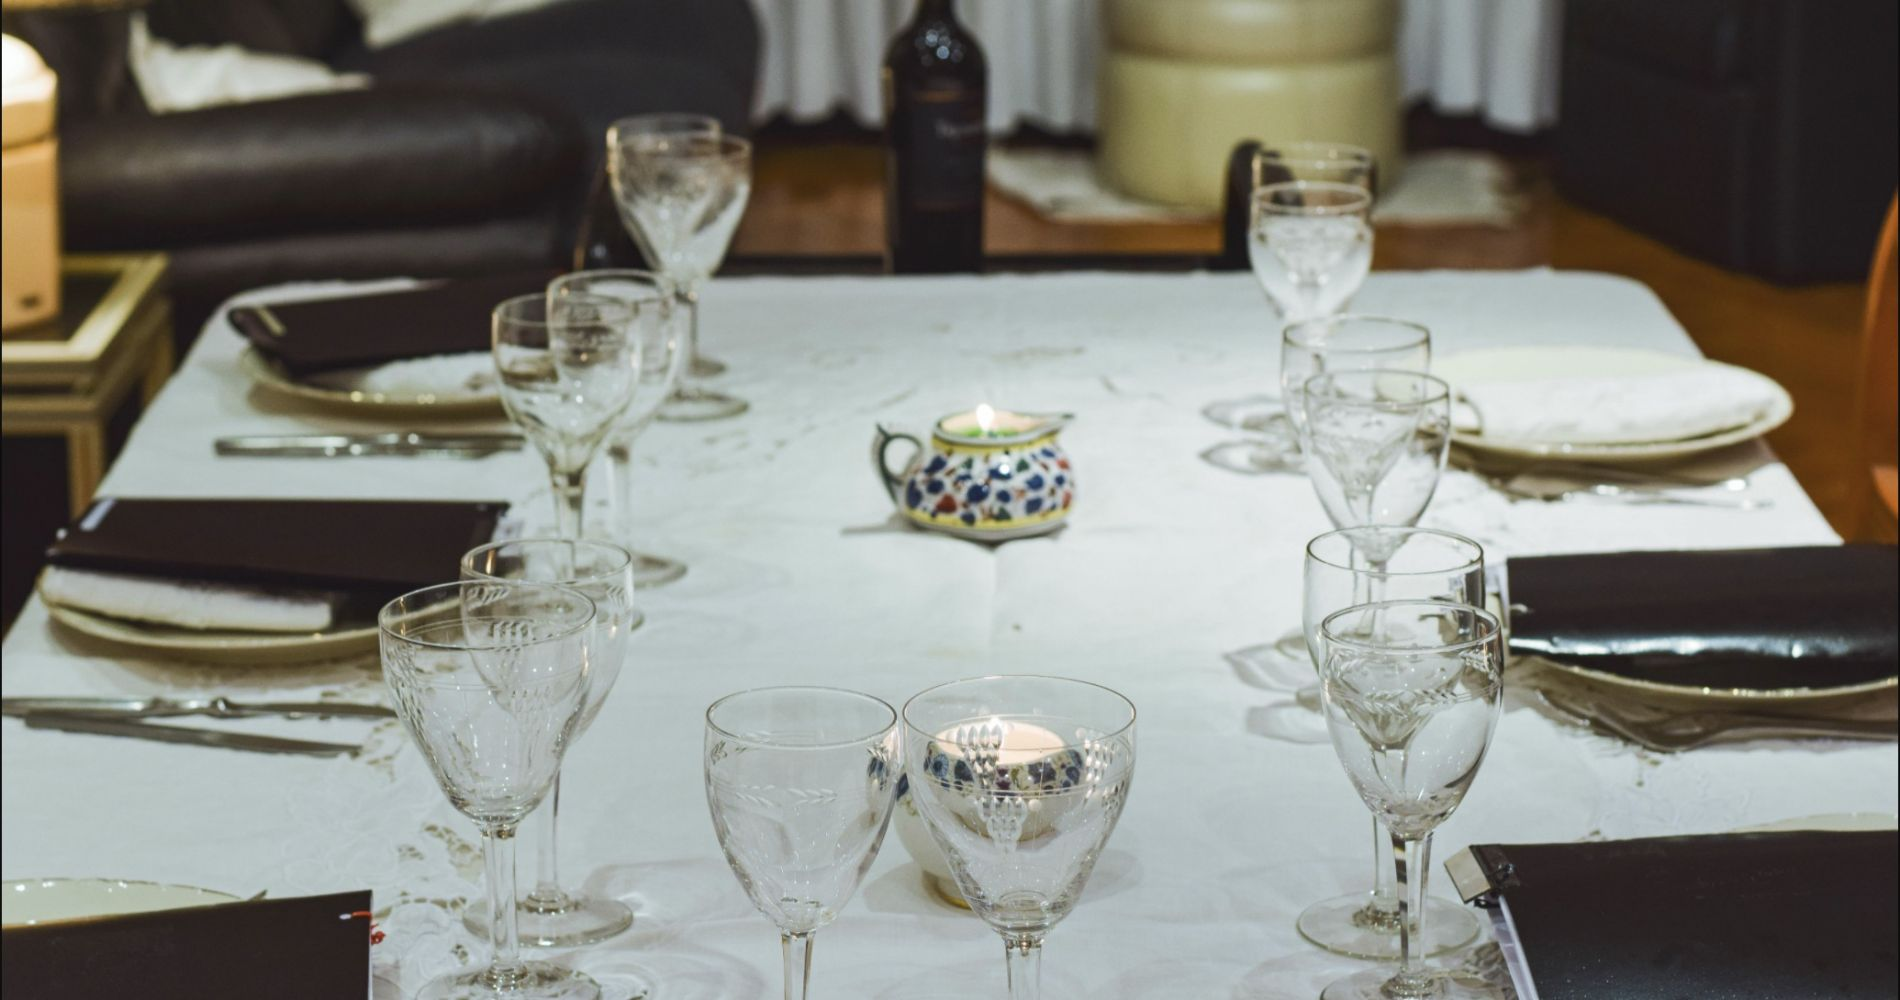 Pekale, a Jewish Cuisine and History Dining Experience